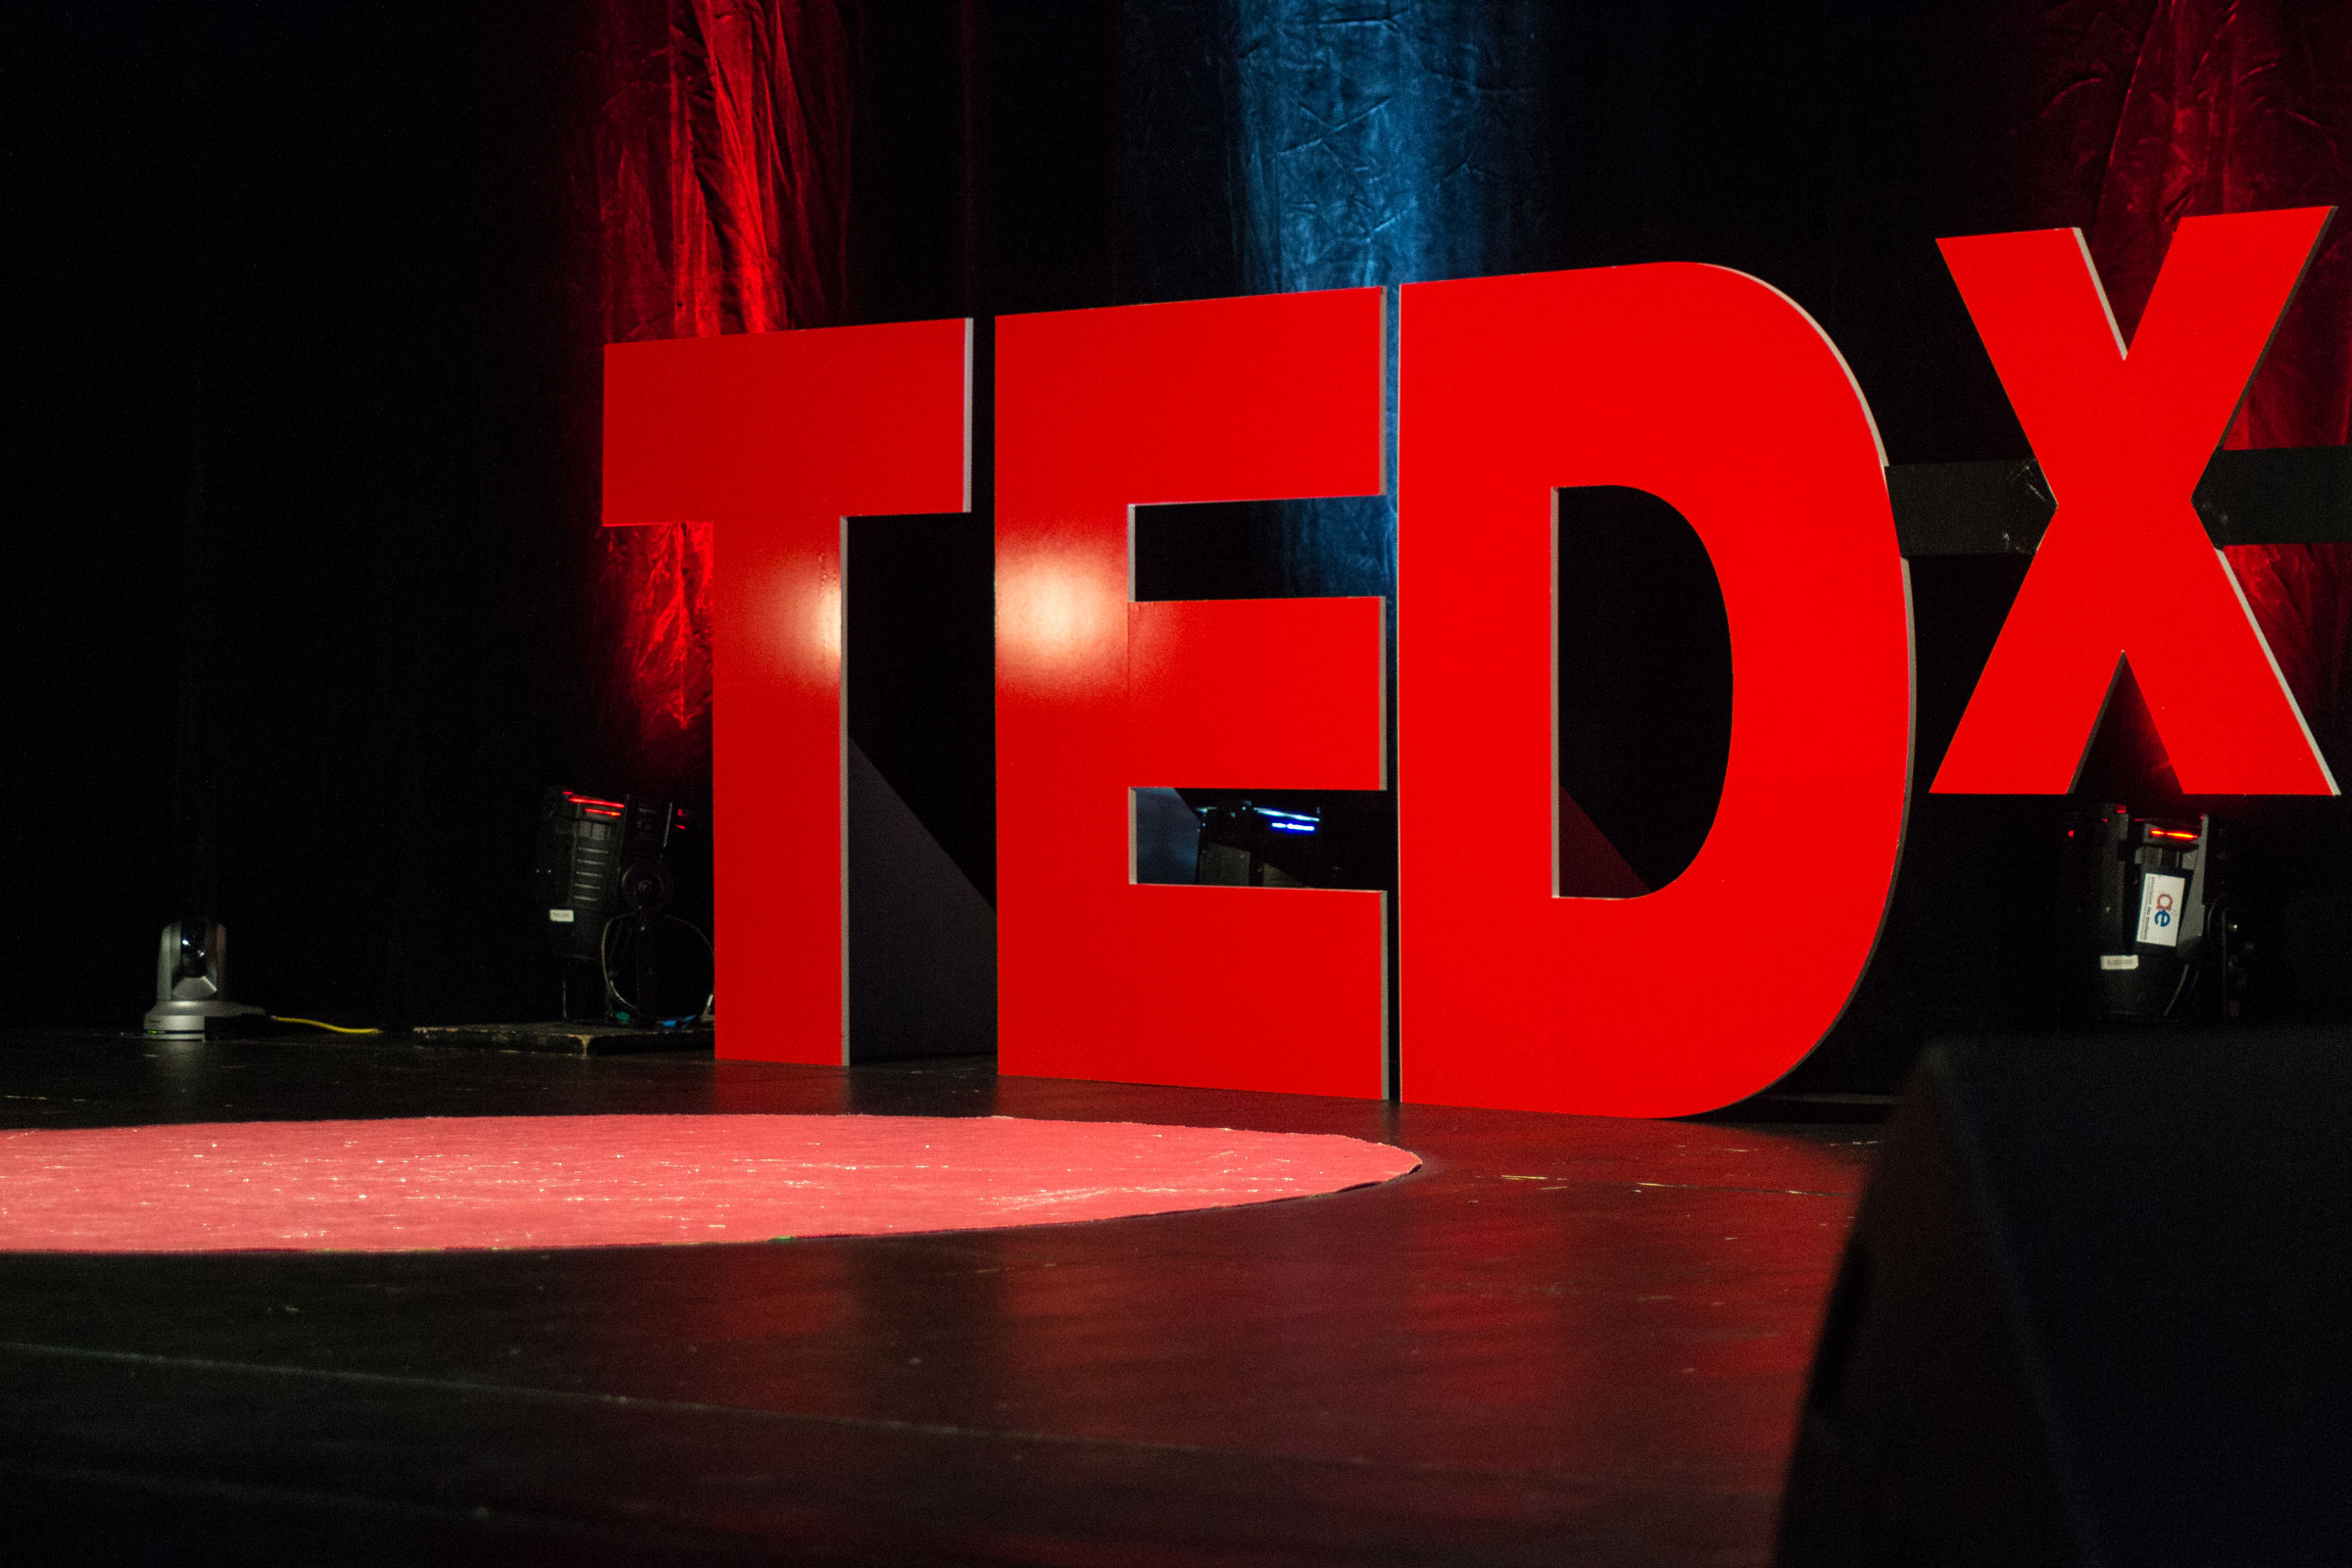 How TEDx started